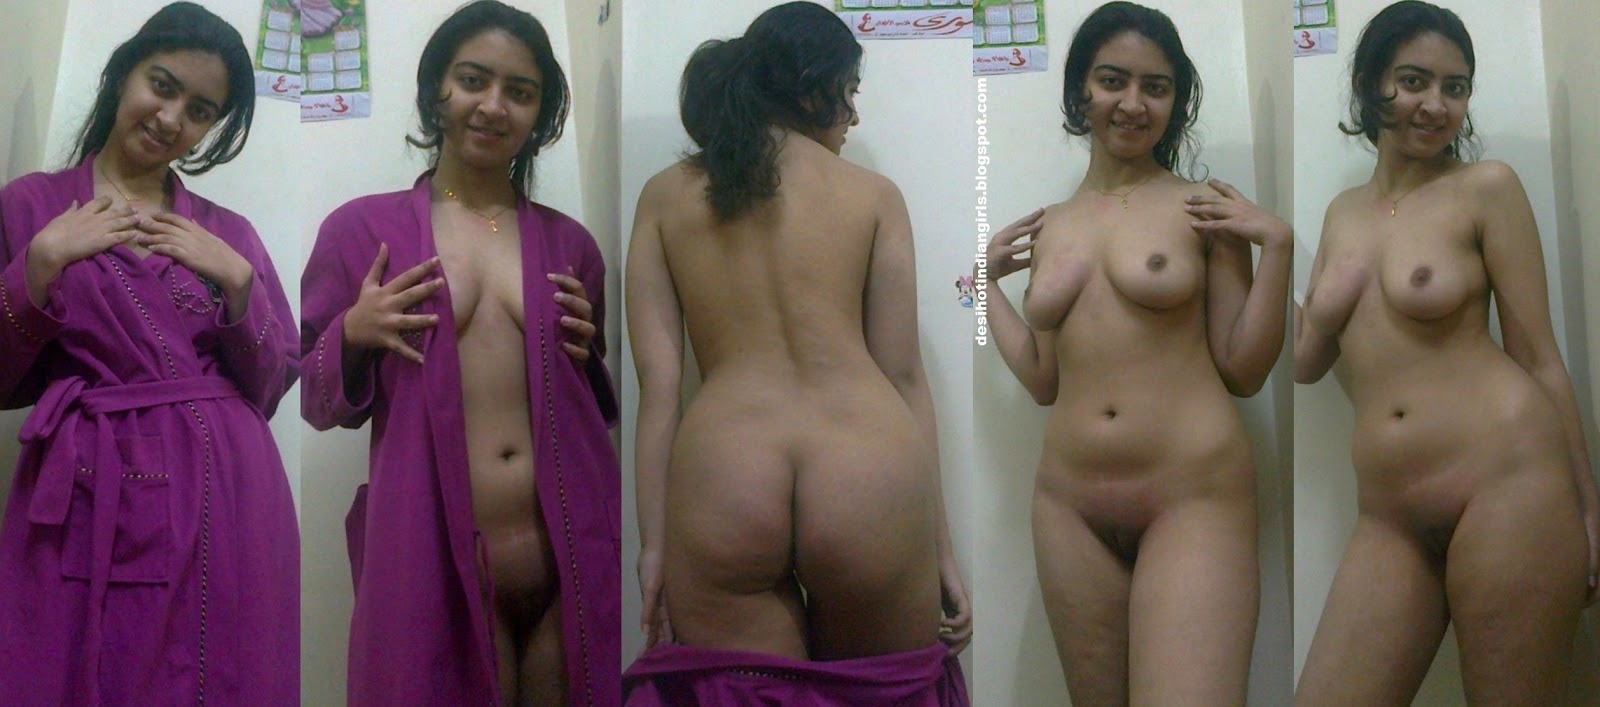 nudes of hindi girls